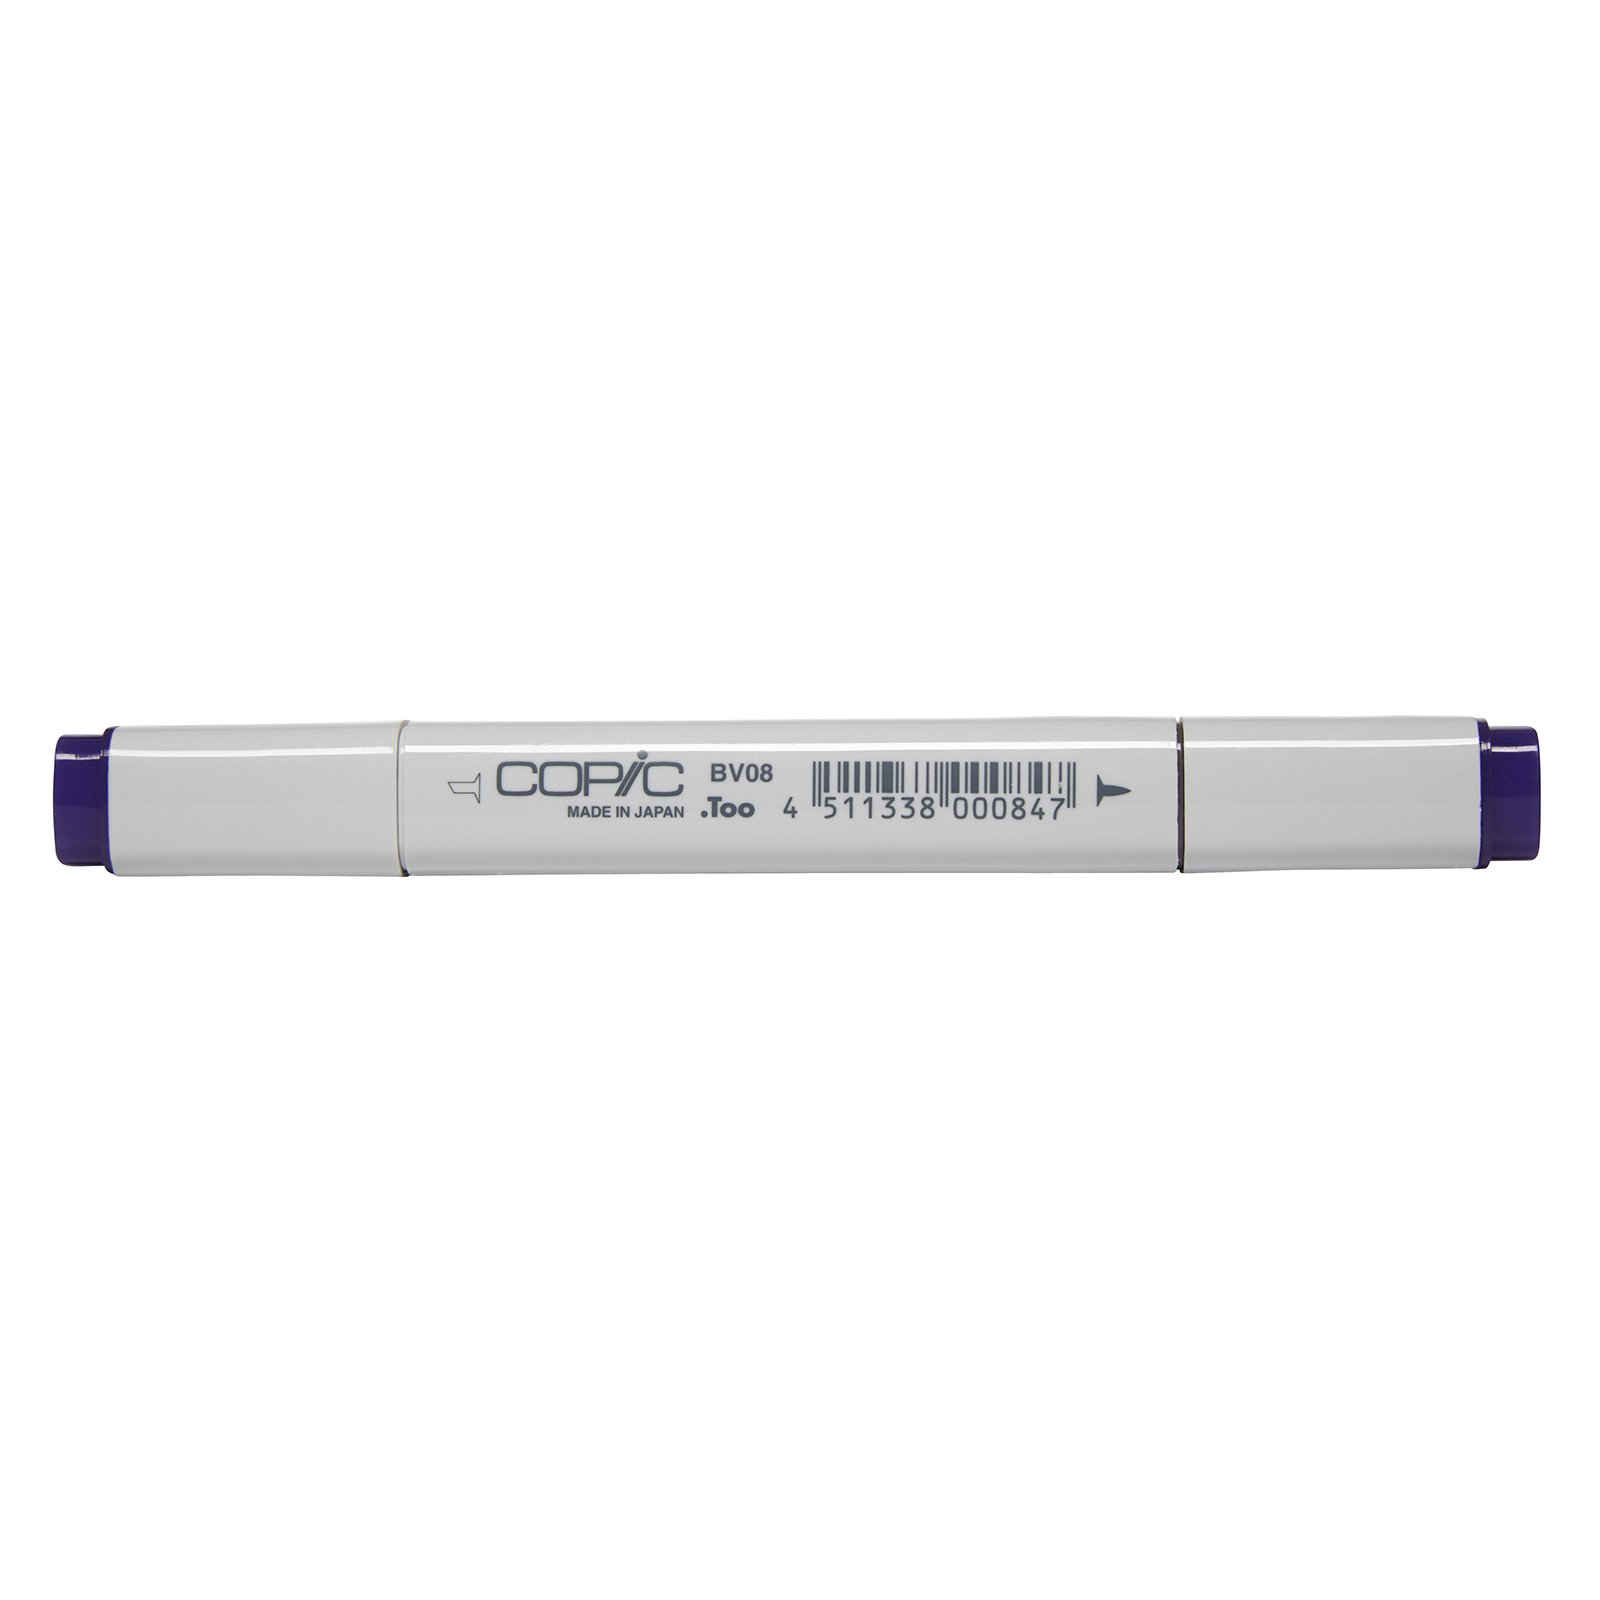 Copic Marker with Replaceable Nib, BV08-Copic, Blue Violet